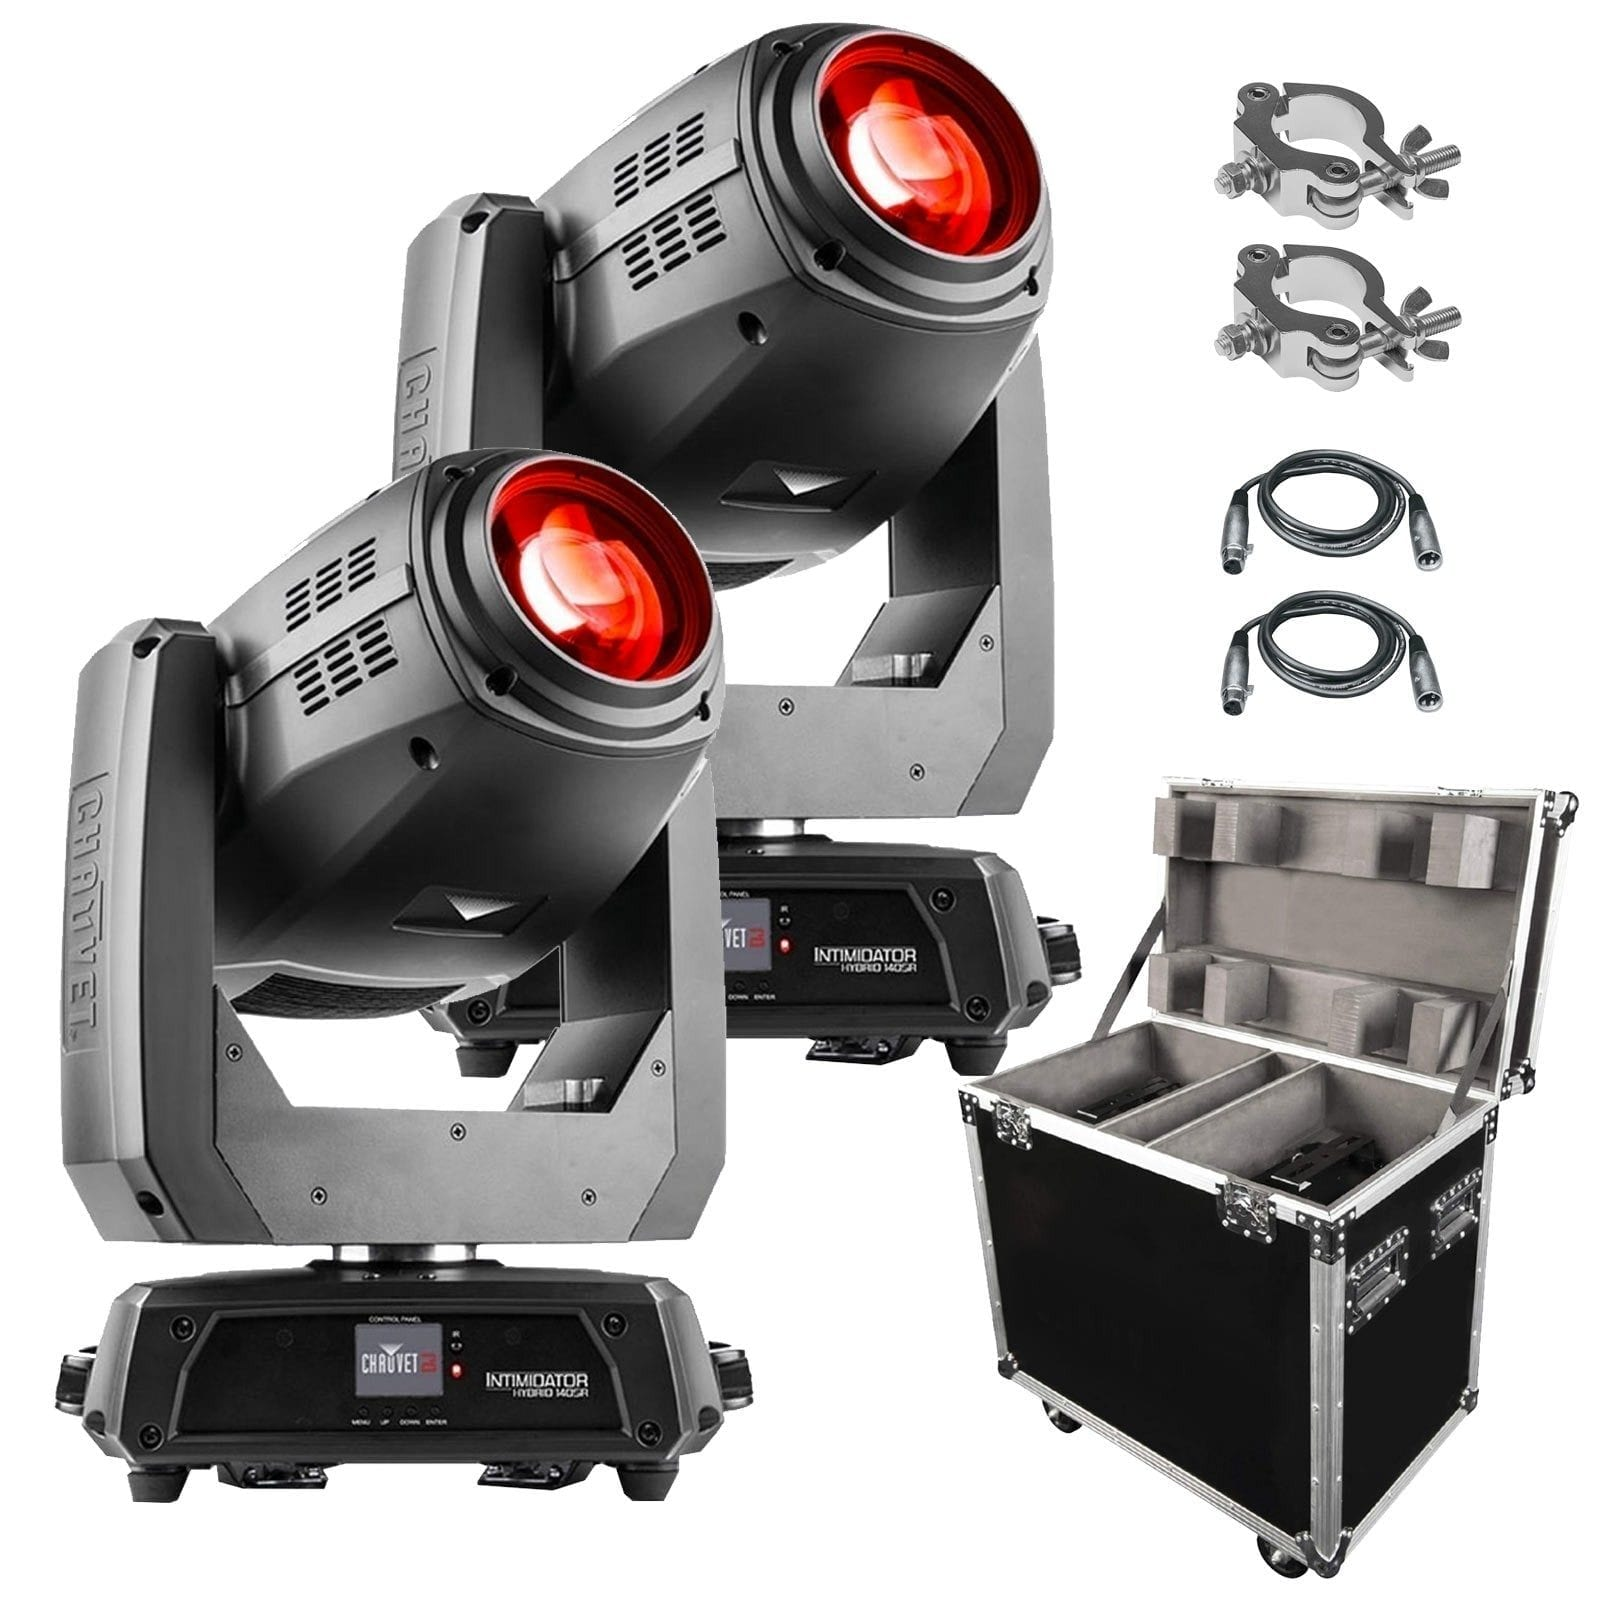 2-chauvet-dj-intimidator-hybrid-140sr-all-in-one-moving-heads-with-road-case-pack